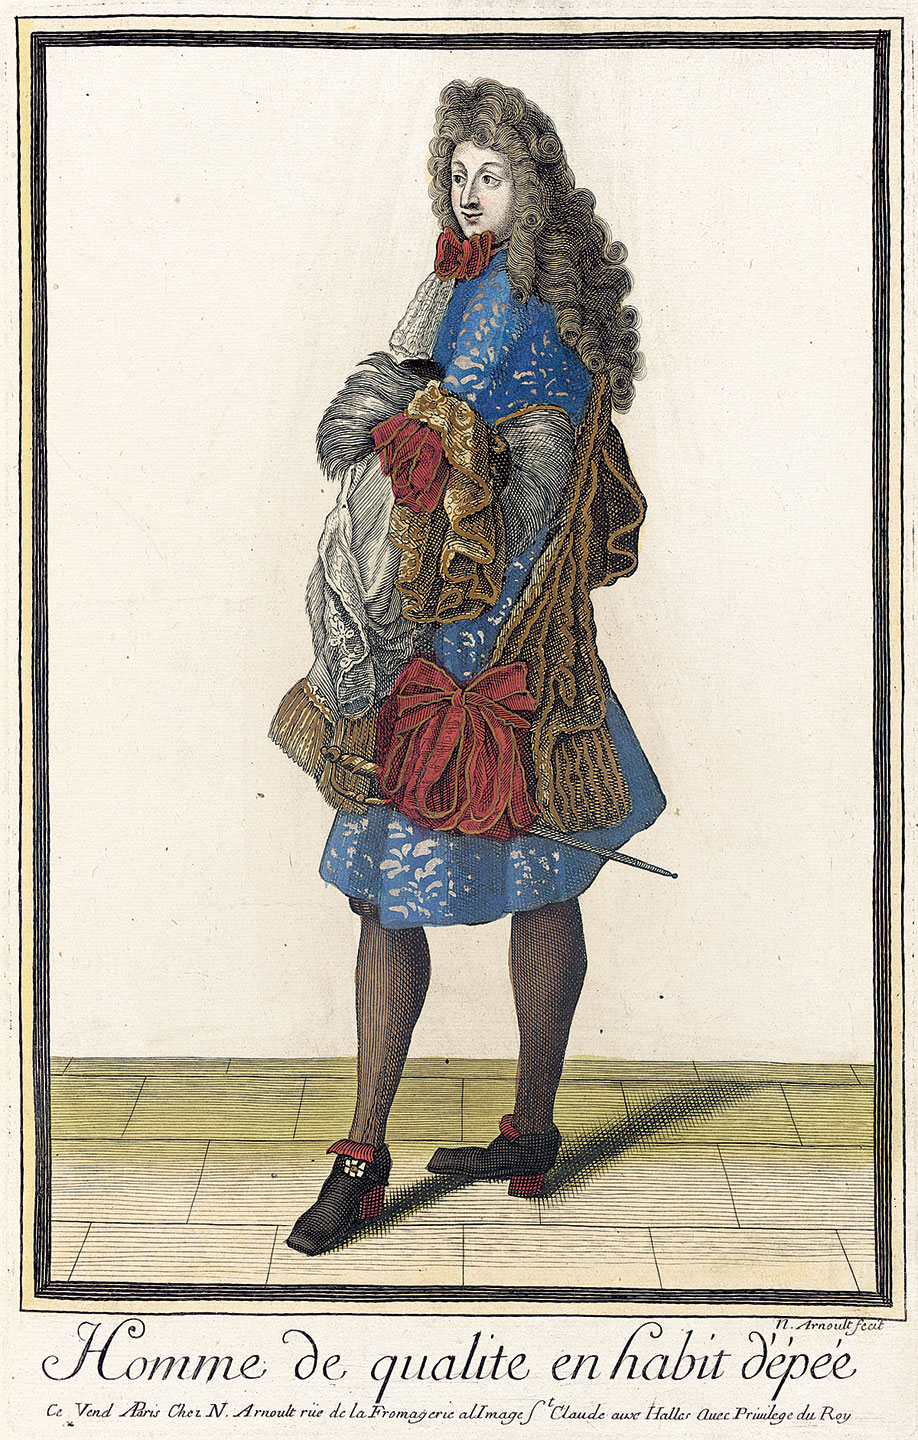 HOMME DE QUALITE EN HABIT D'ÊPÉE by Nicolas Arnoult, French, of handcolored engraving on paper, 1683-1688.  Courtesy of the Los Angeles County Museum of Art.